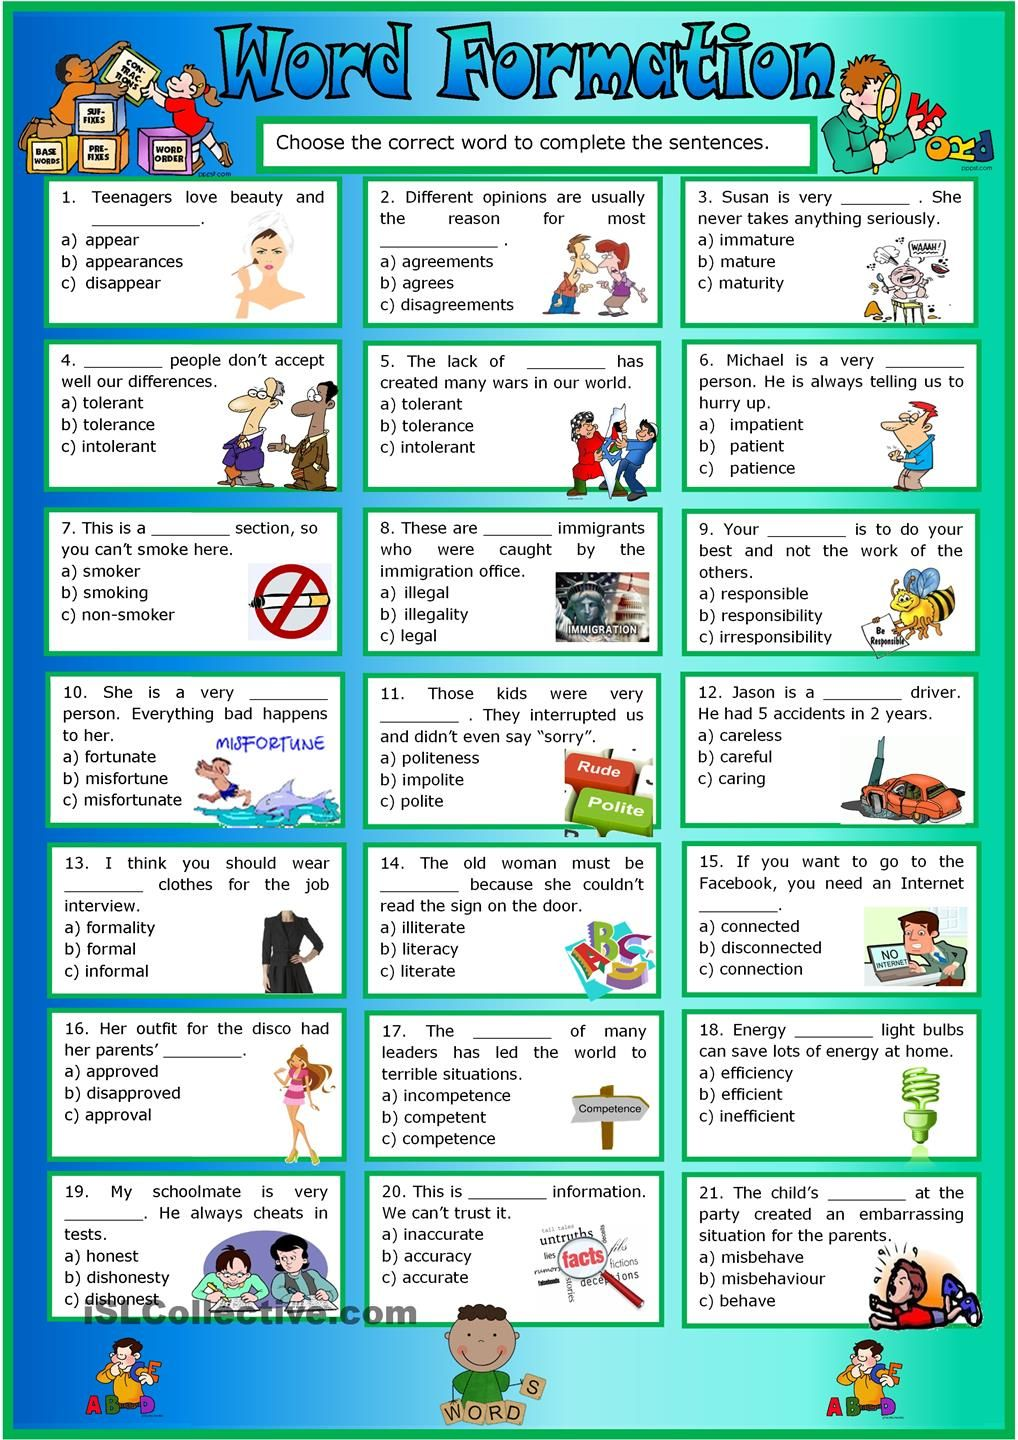 Word Formation Word Formation Learn English English Vocabulary [ 1440 x 1018 Pixel ]